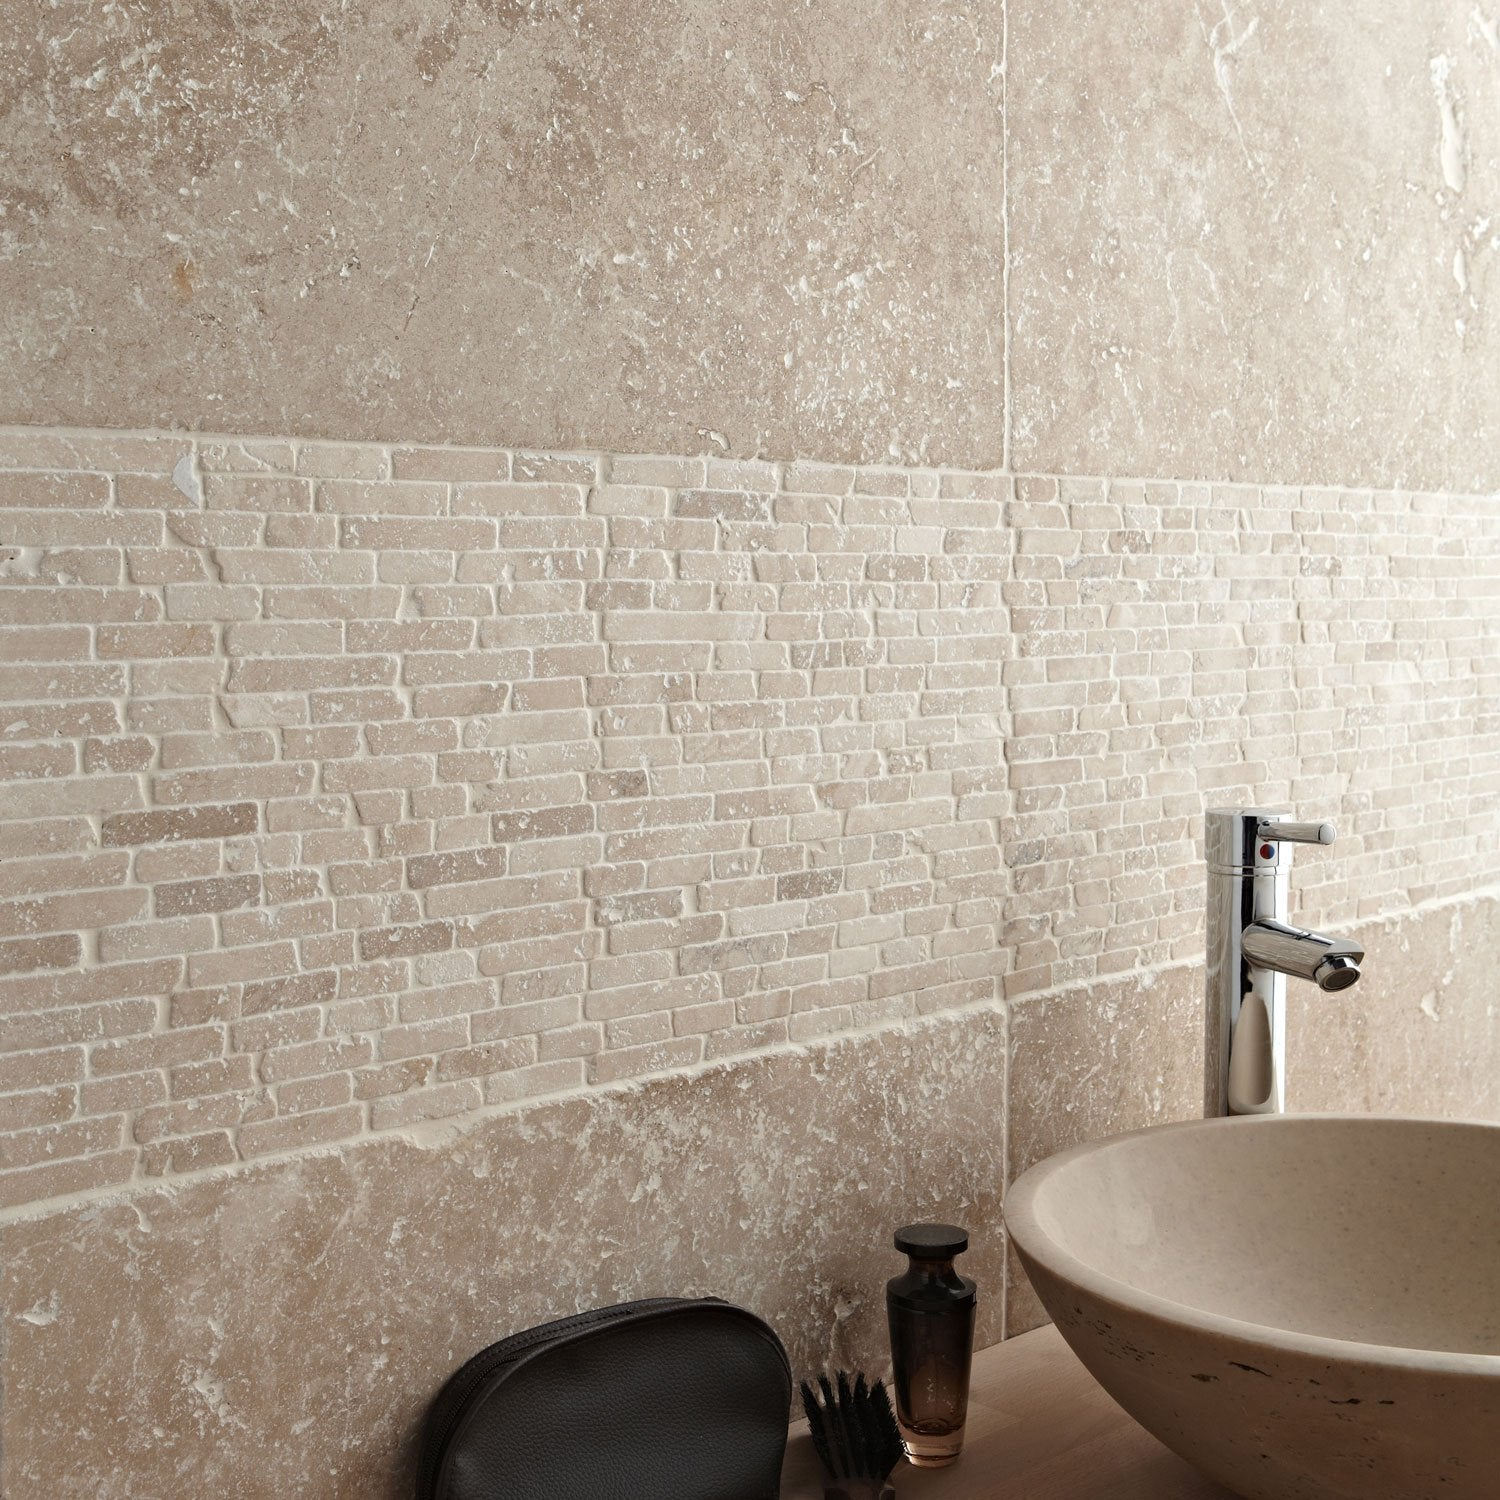 Travertin sol et mur beige effet pierre travertin x - Mur interieur en pierre leroy merlin ...